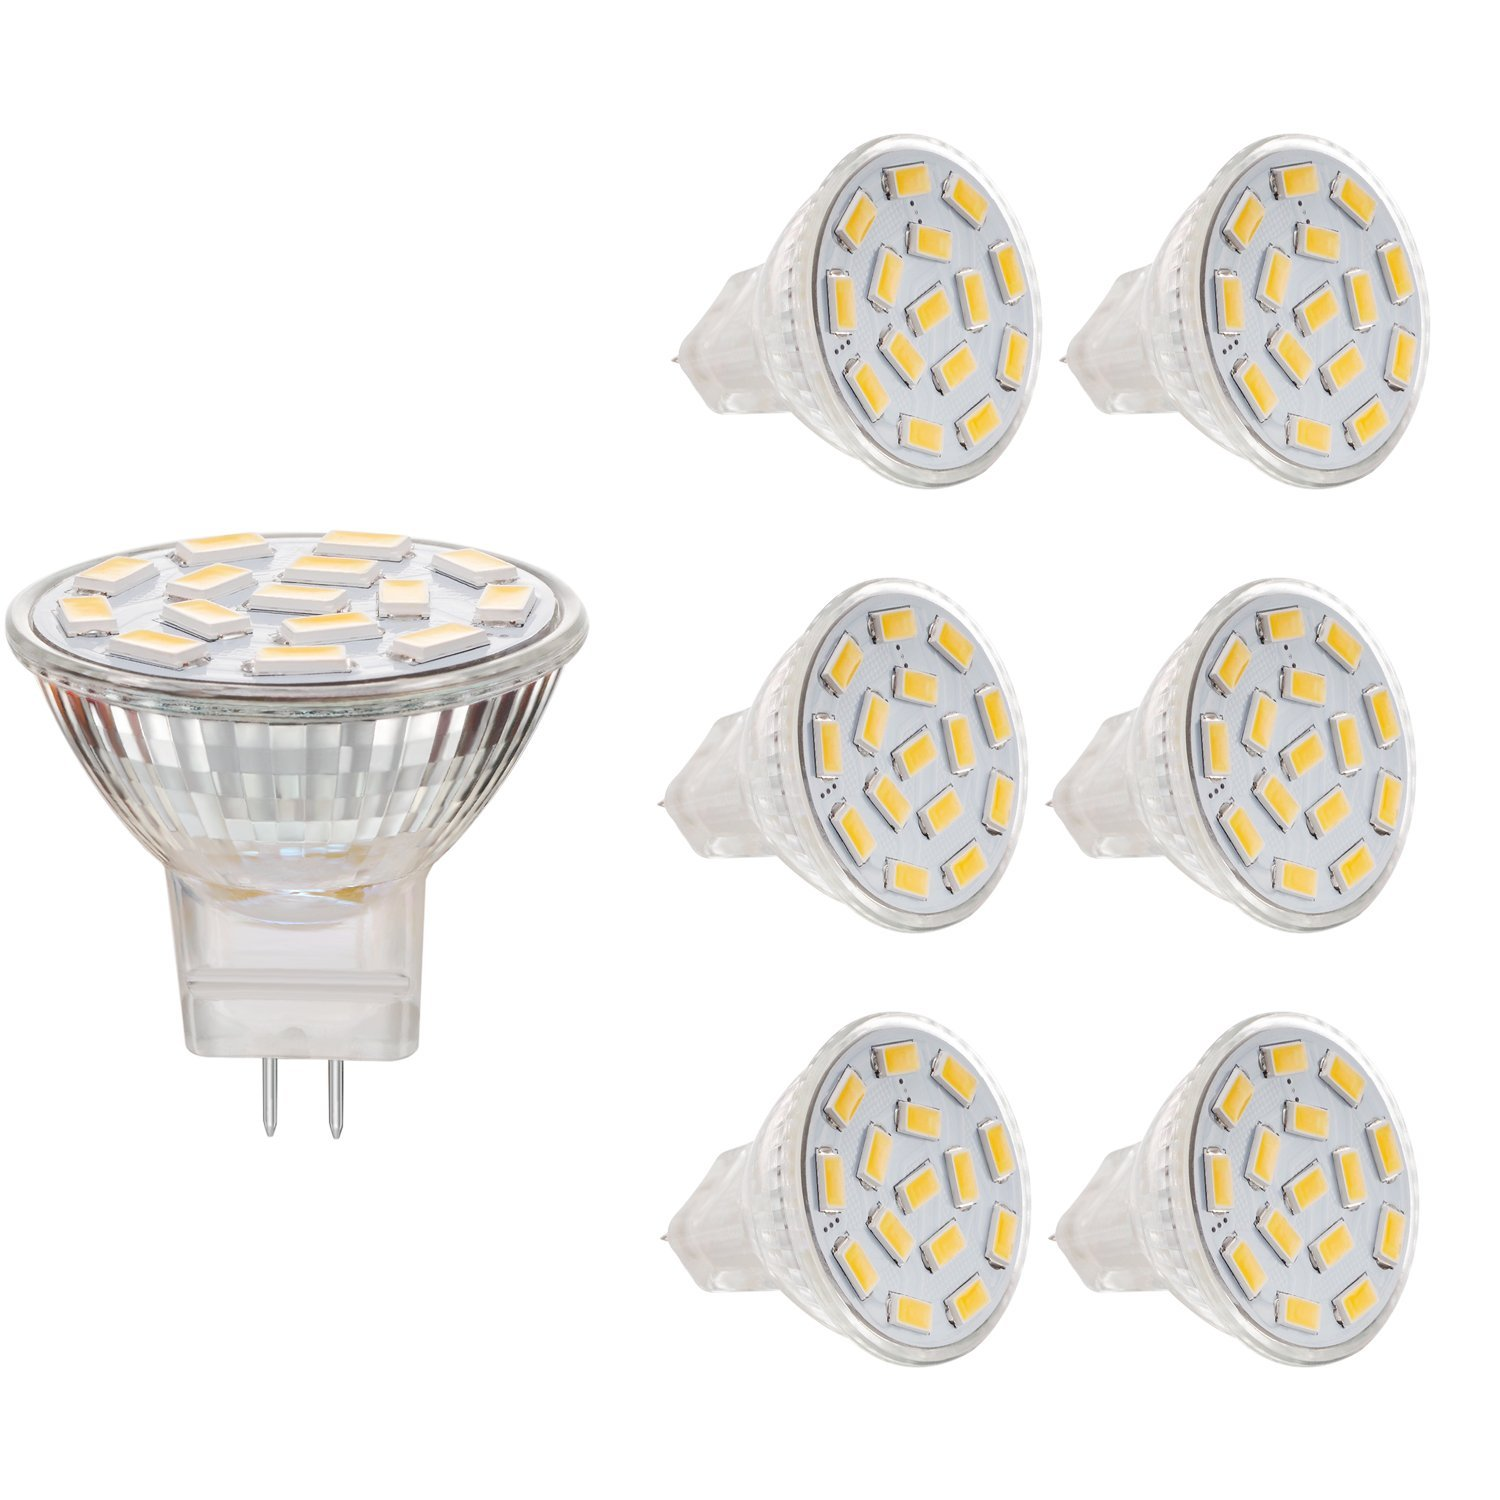 Bogao 2.6W MR11 GU4.0 LED Bulbs, 20-25W Halogen Bulbs Equivalent, GU4 Base, 240lm, 12V AC/DC, 120 Flood Beam, Warm White, 3000K, LED Light Bulbs, Pack of 6